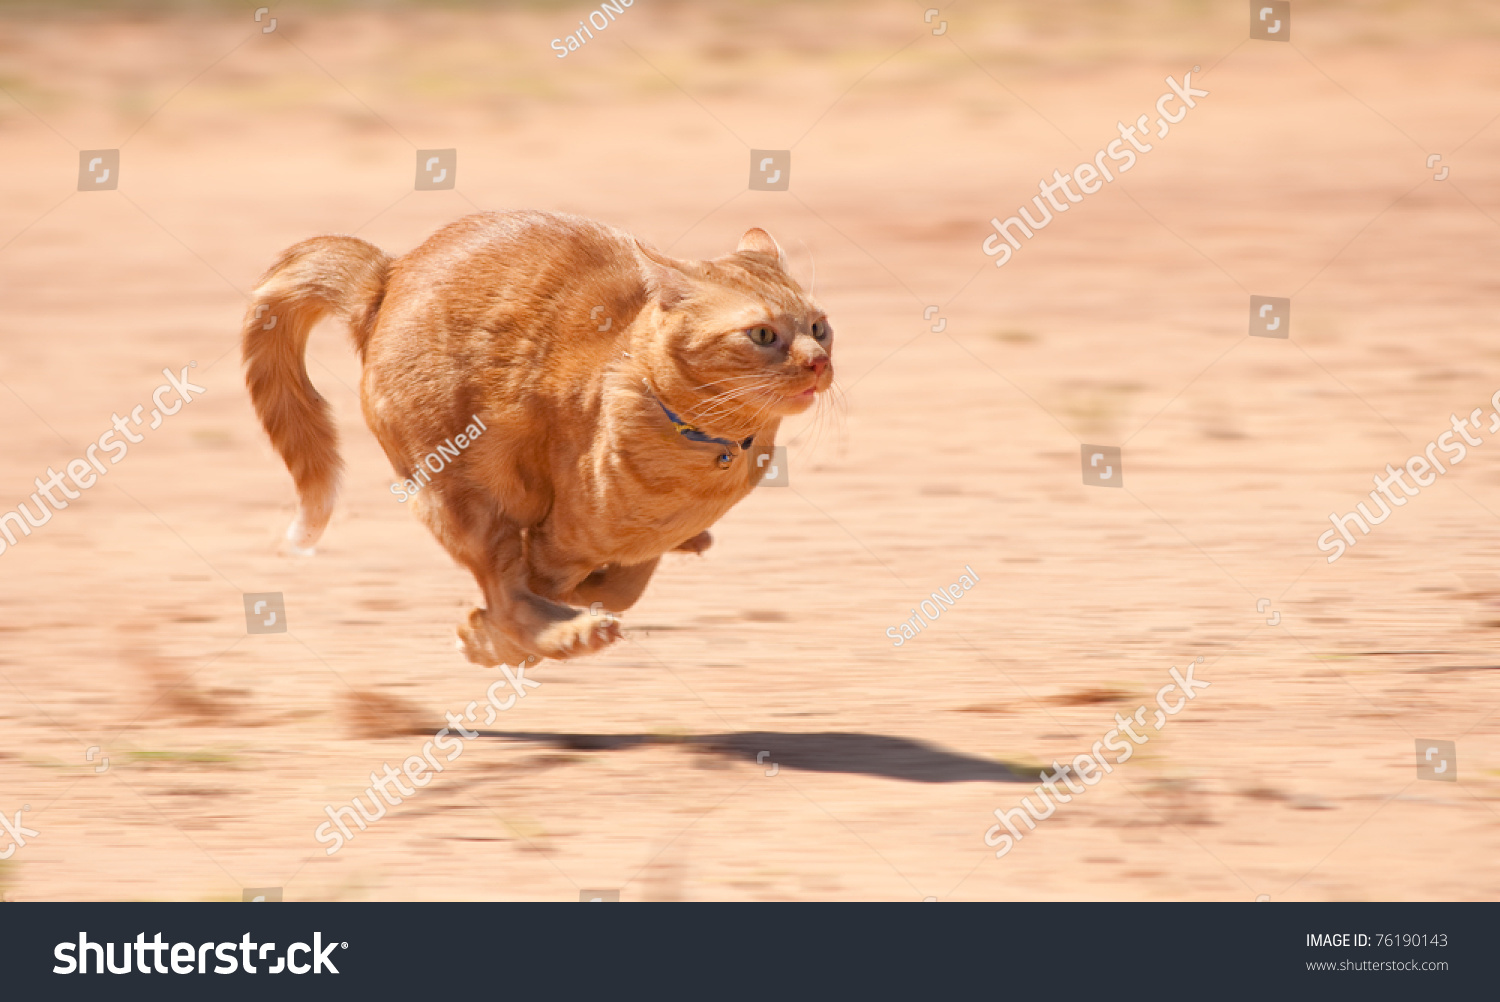 stock-photo-orange-tabby-cat-running-ful